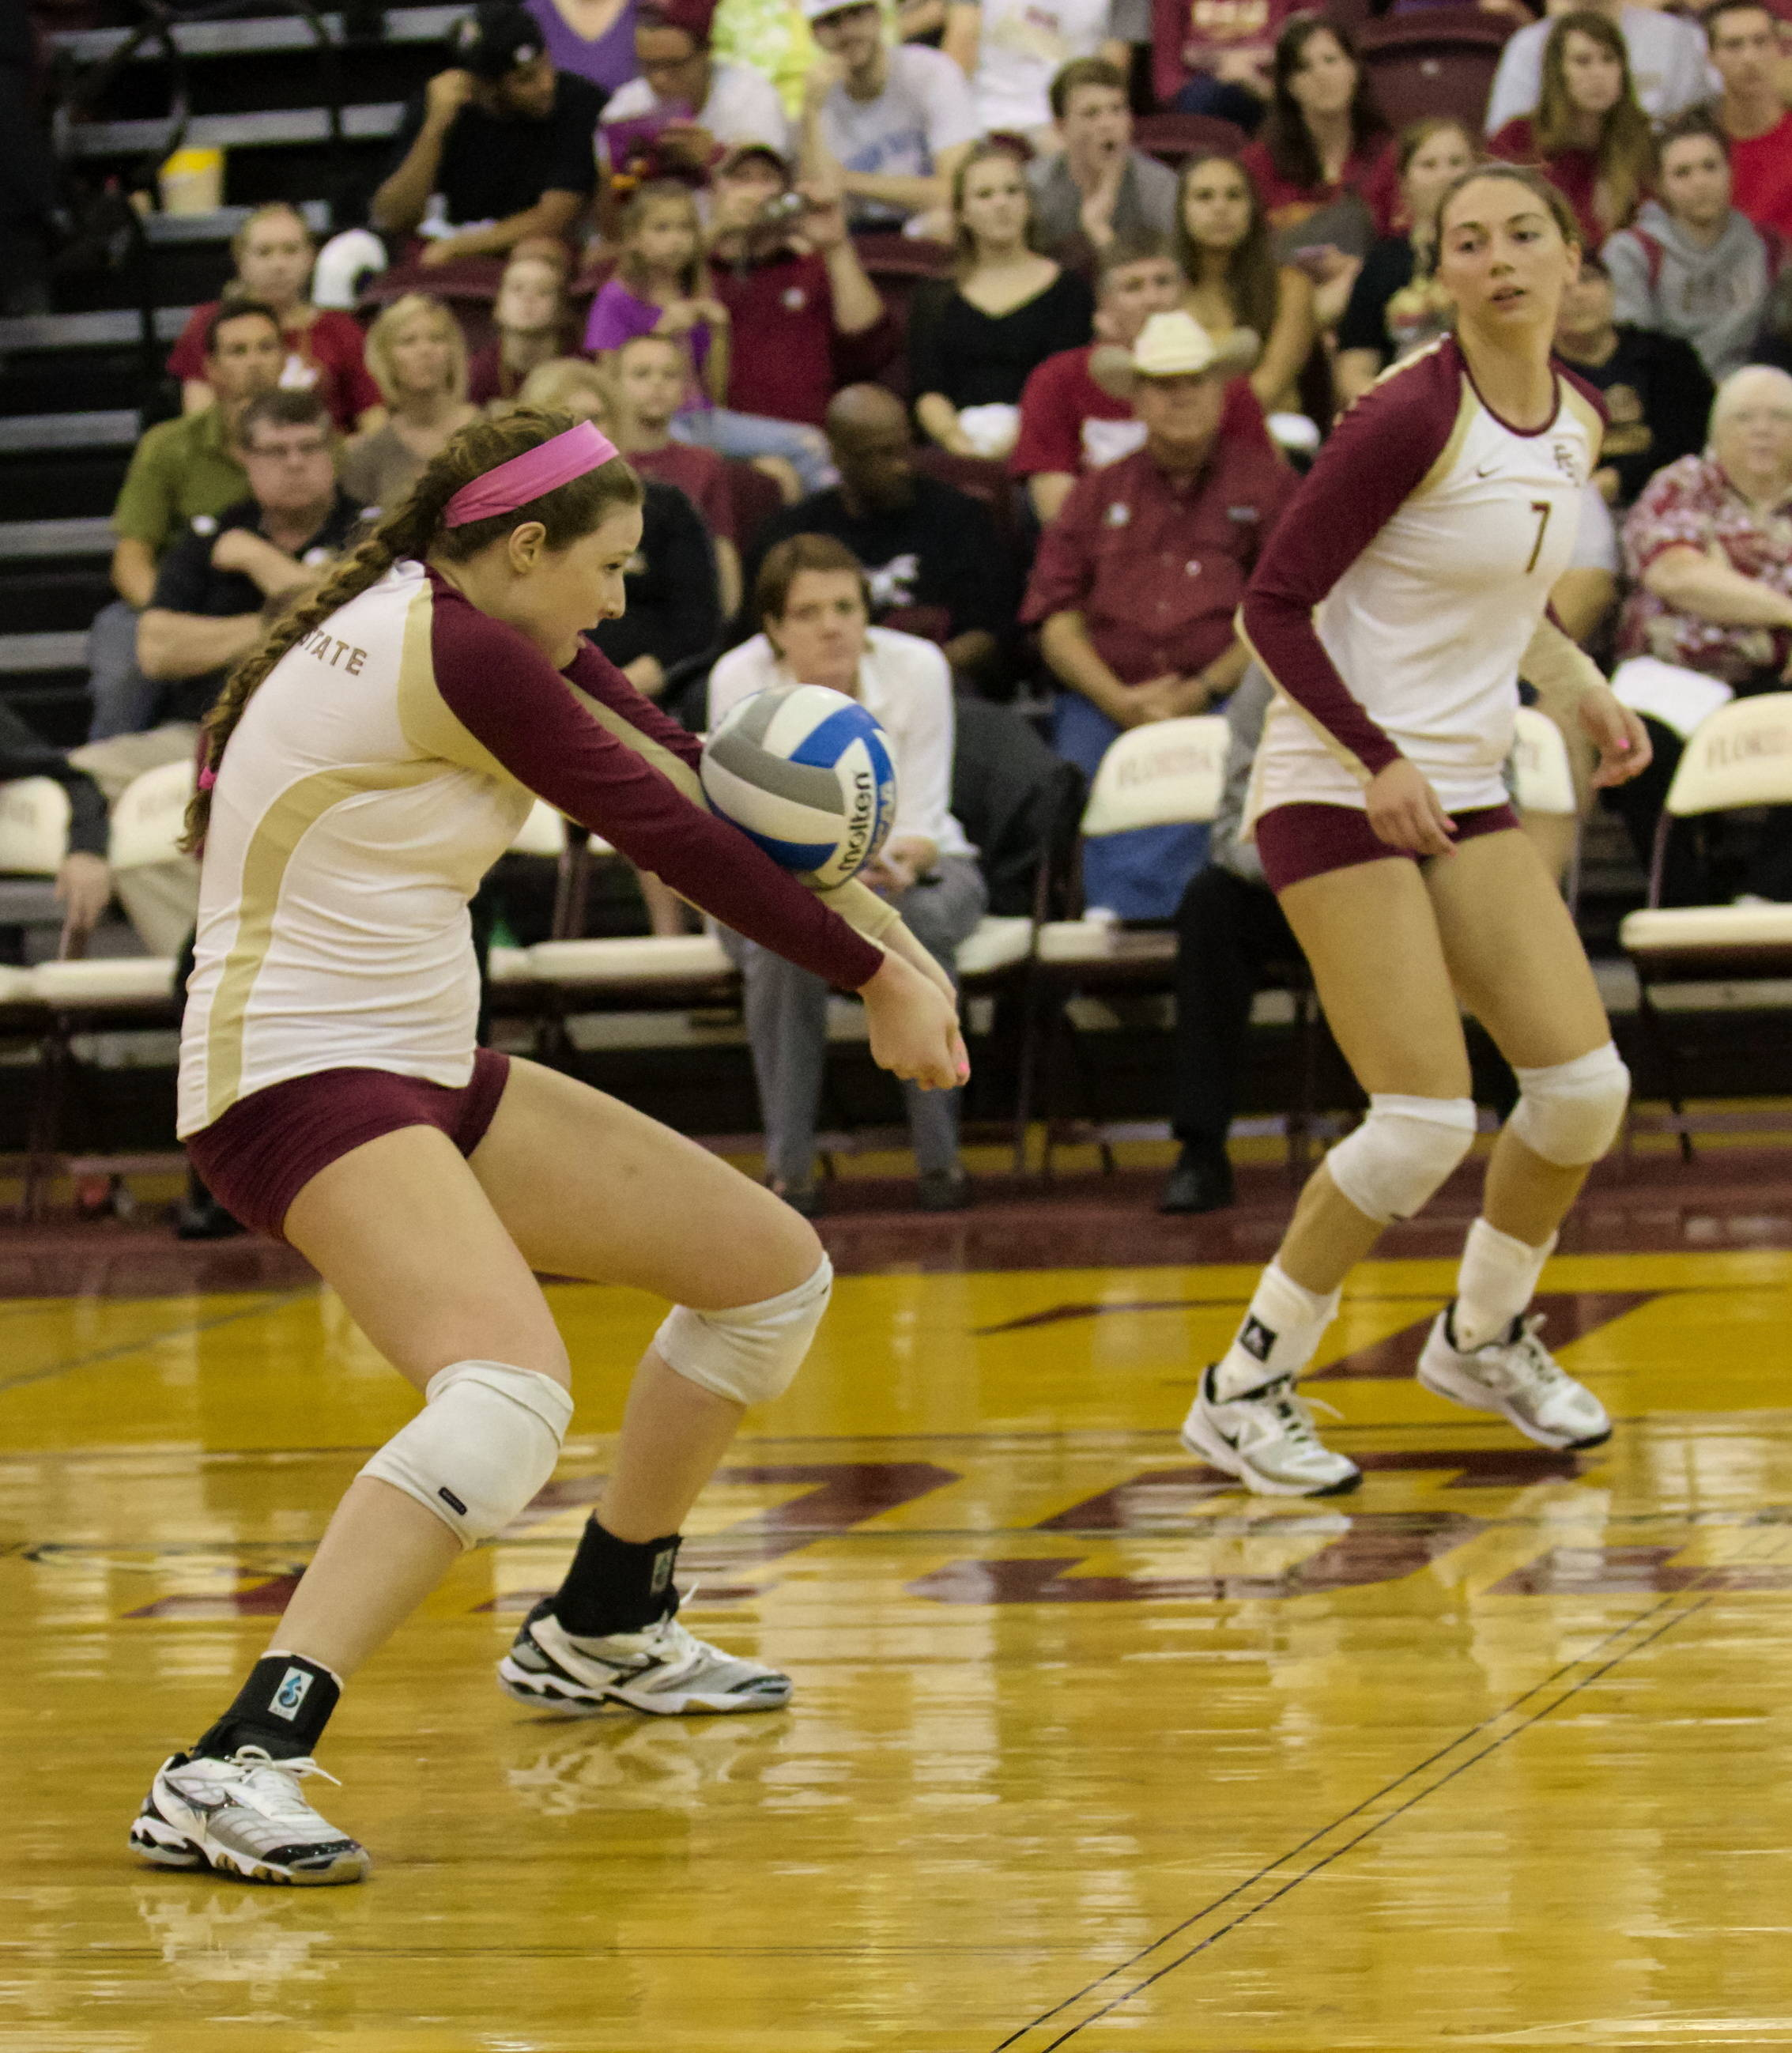 Nicole Walch (5), Fatma Yildirim (7), FSU vs Virginia, 10/26/12 (Photo by Steve Musco)